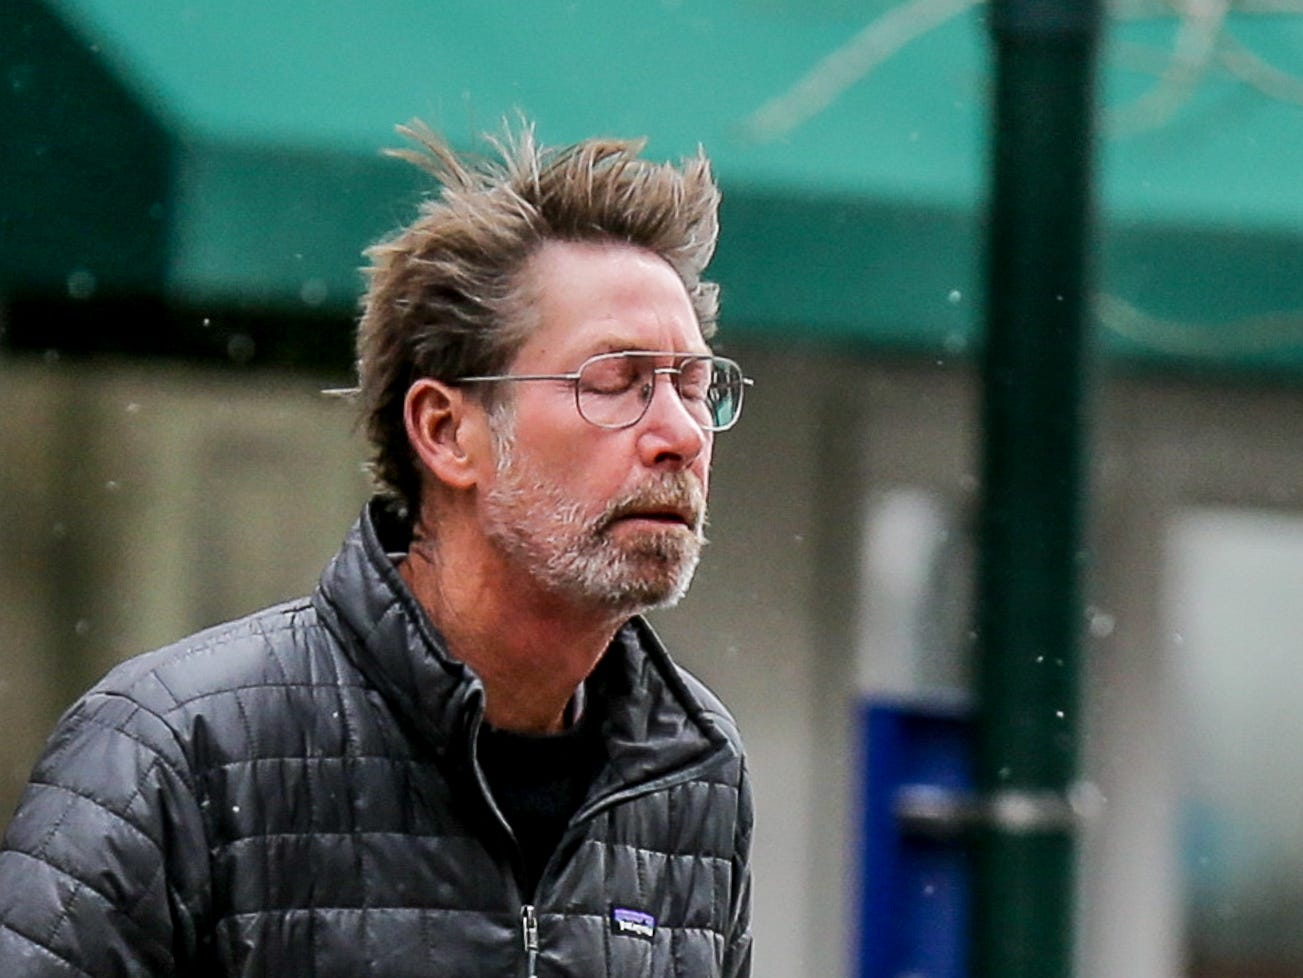 A man is hit in the face with a cold gust of wind and snow fluries in Indianapolis on Monday, April 16, 2018.